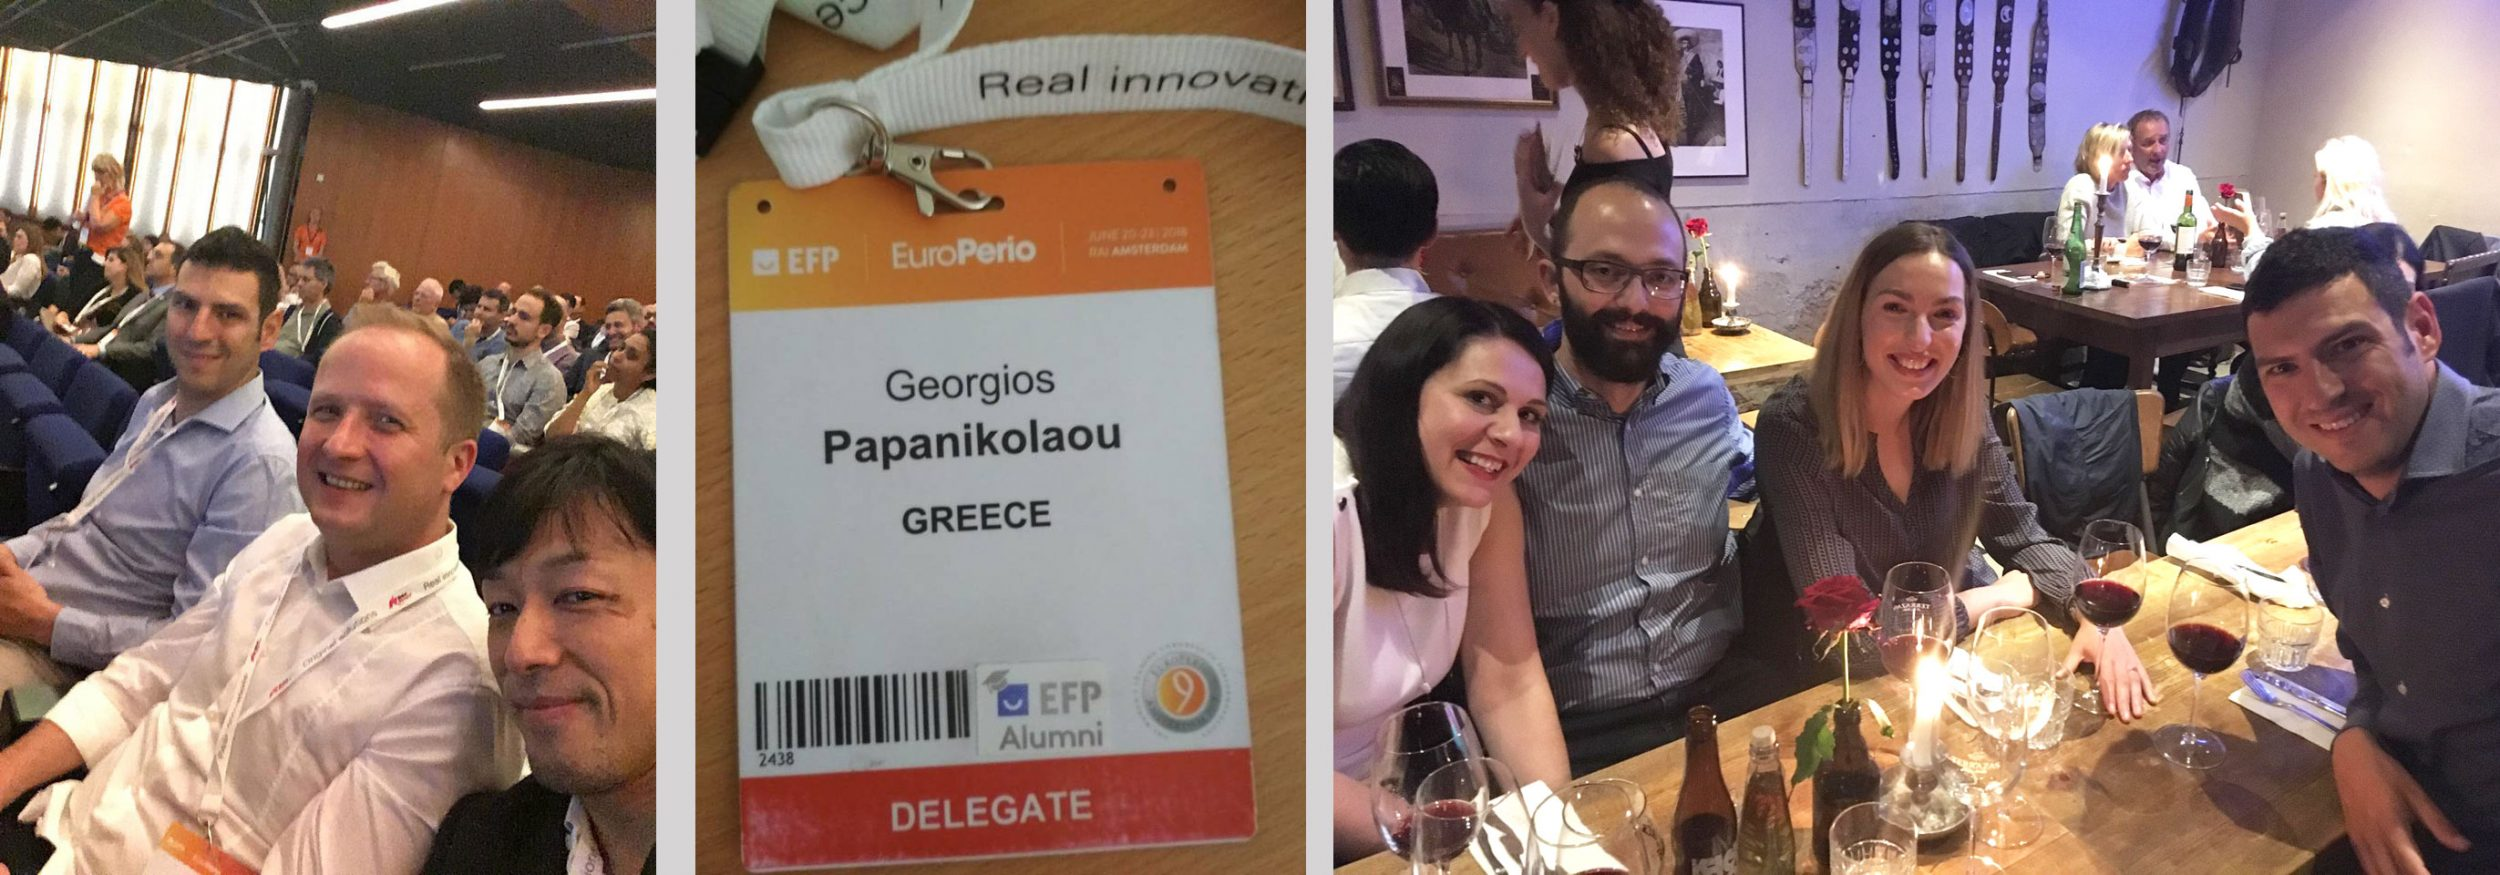 EuroPerio 9 - Gothenburg group, Papanikolaou, Παπανικολάου